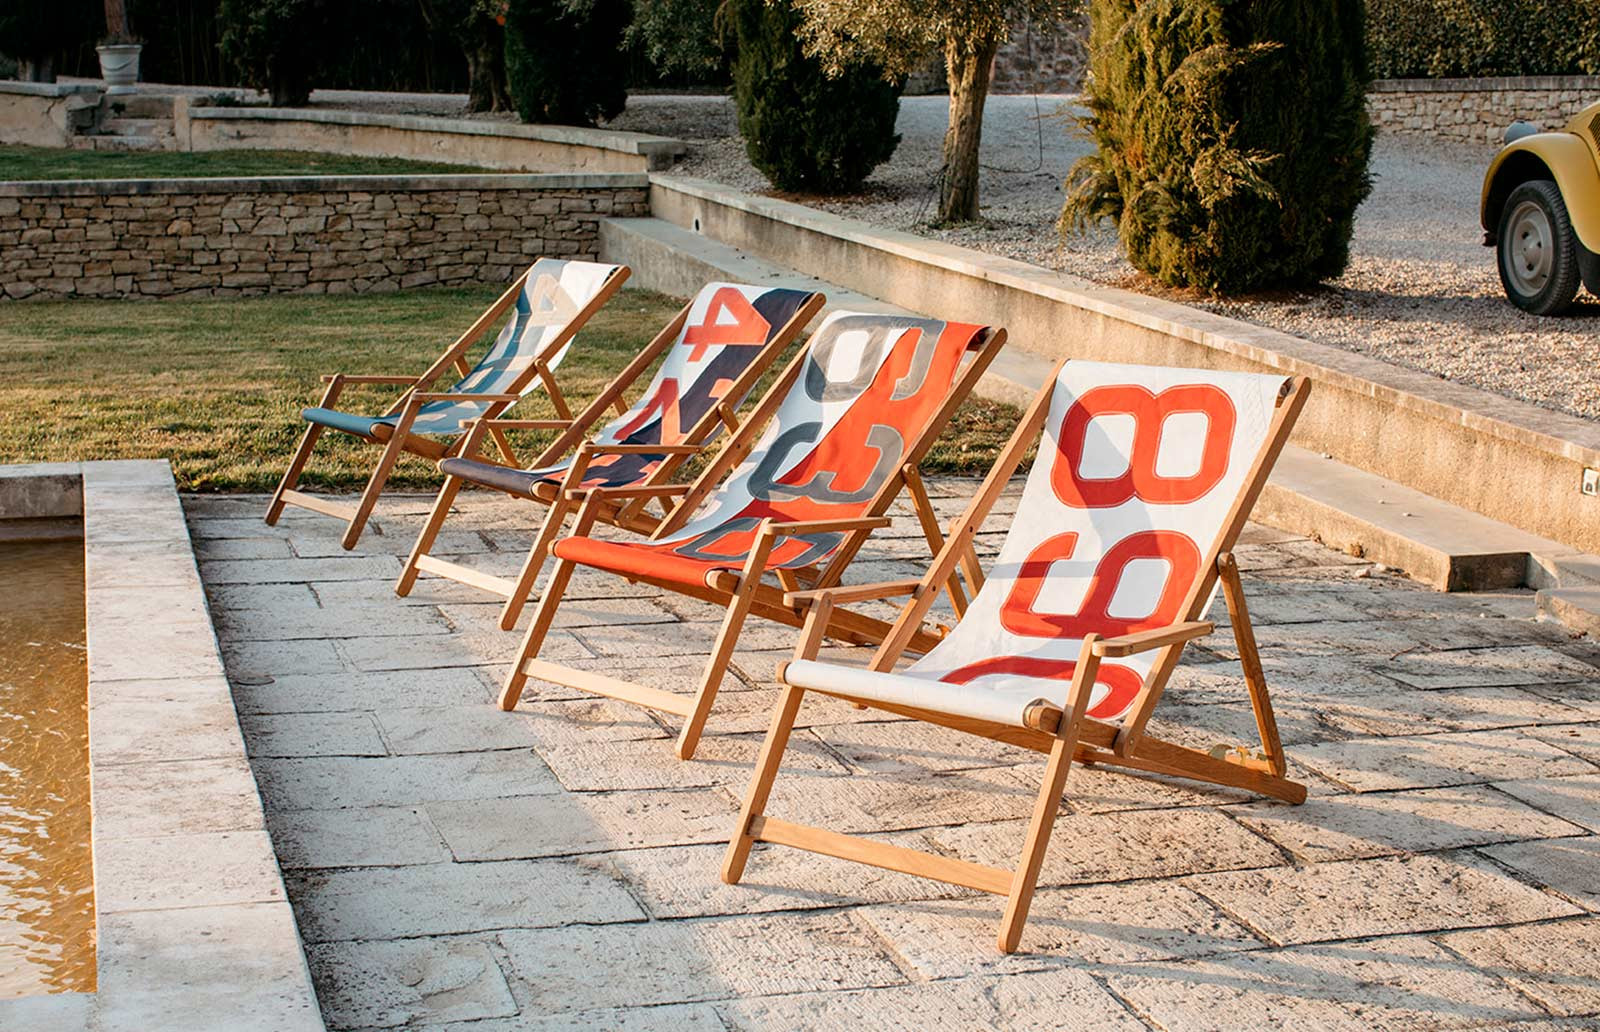 Deckchairs in recycled sailcloth